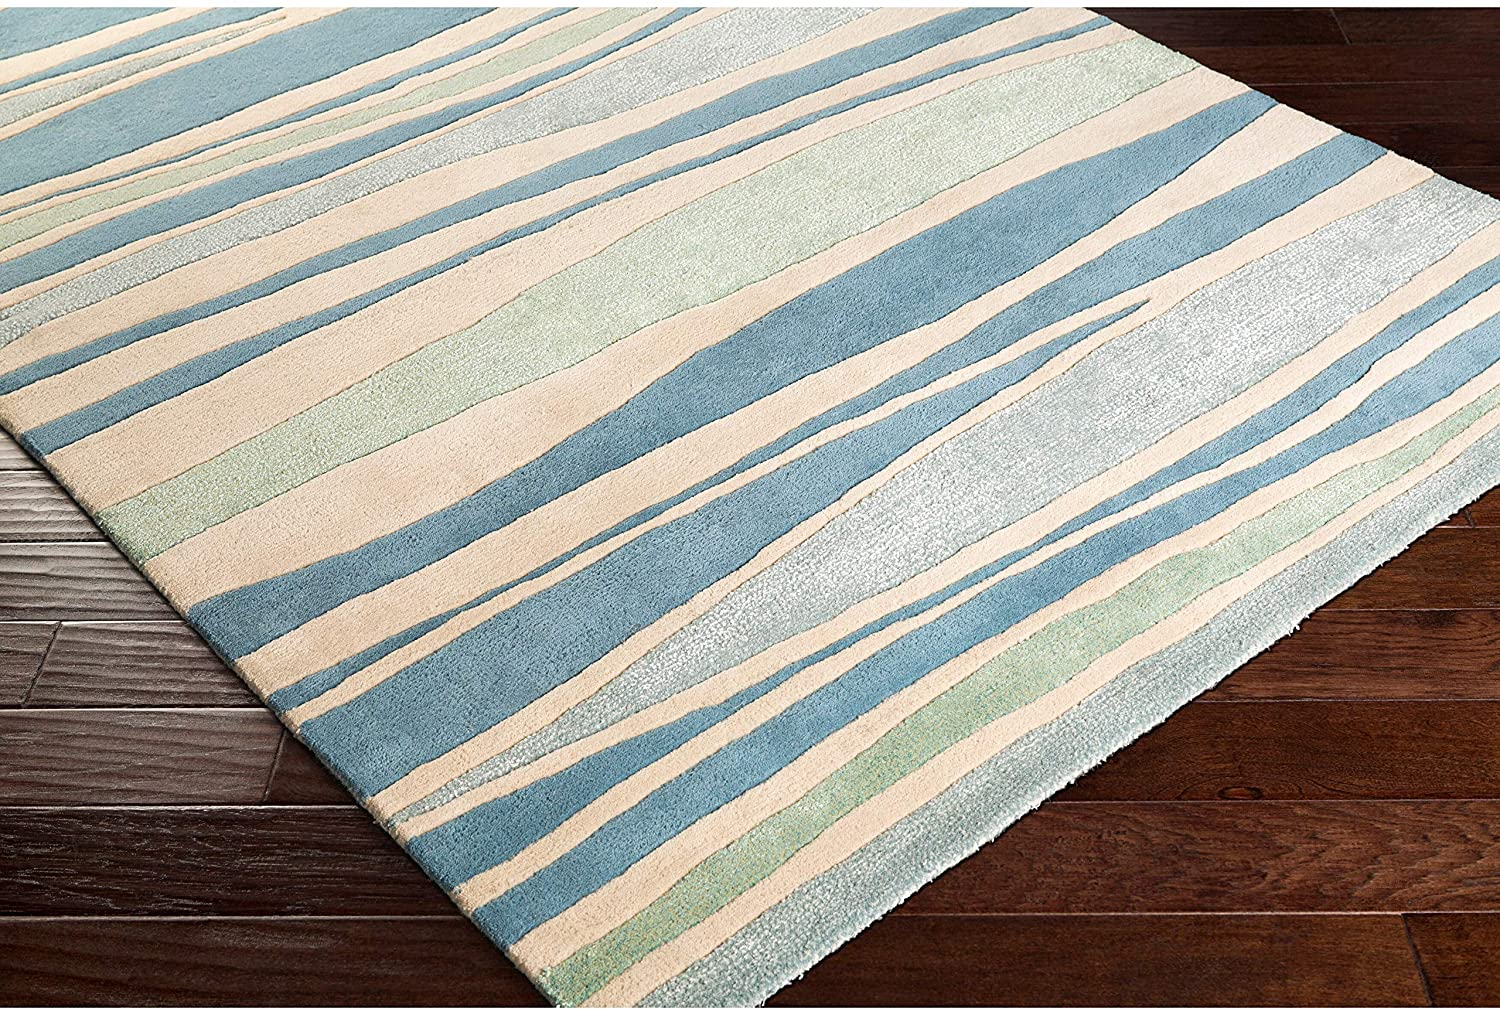 "MISC Striped Wool Area Rug (3'3 X 5'3) 3'3"" 5'3"" Blue/Green Blue Brown Green Ivory Stripe Transitional Rectangle Contains Latex Handmade"